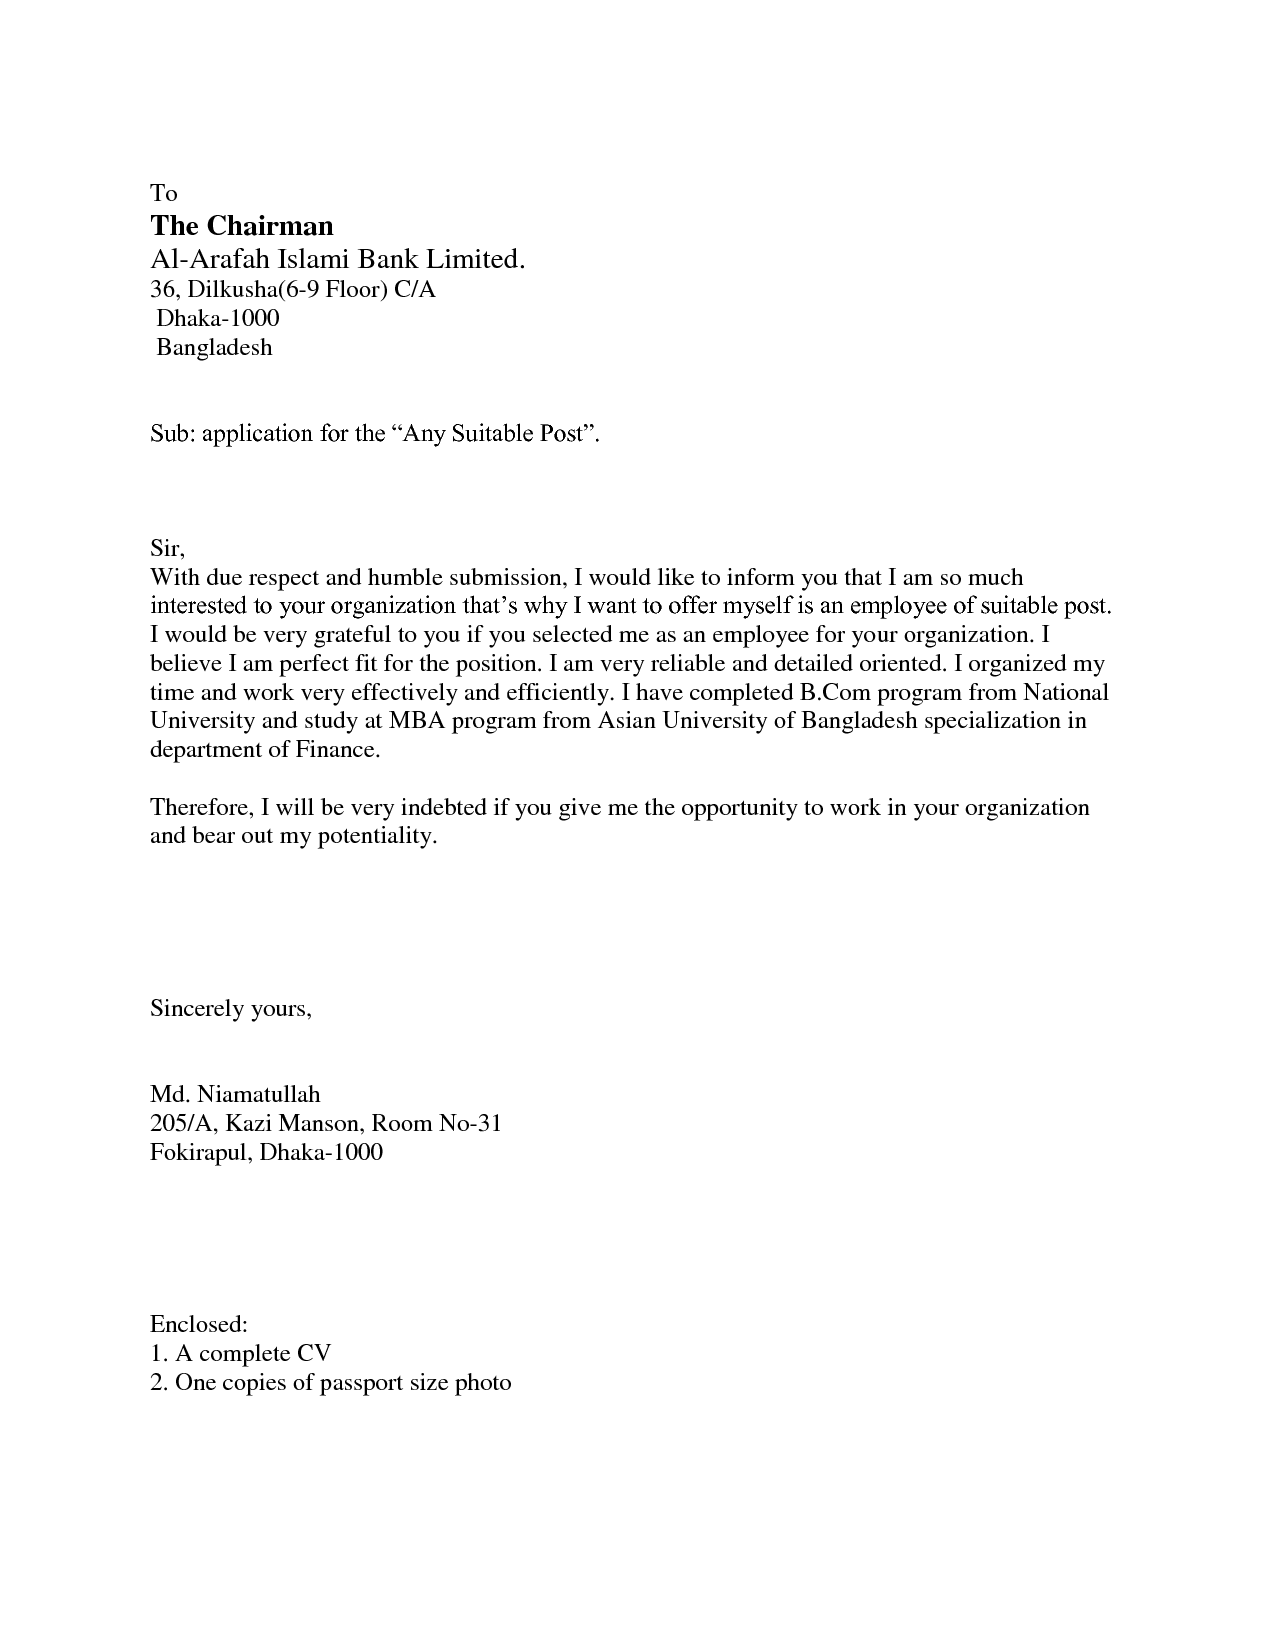 Covering Letter Job Application The Covering Letter Should